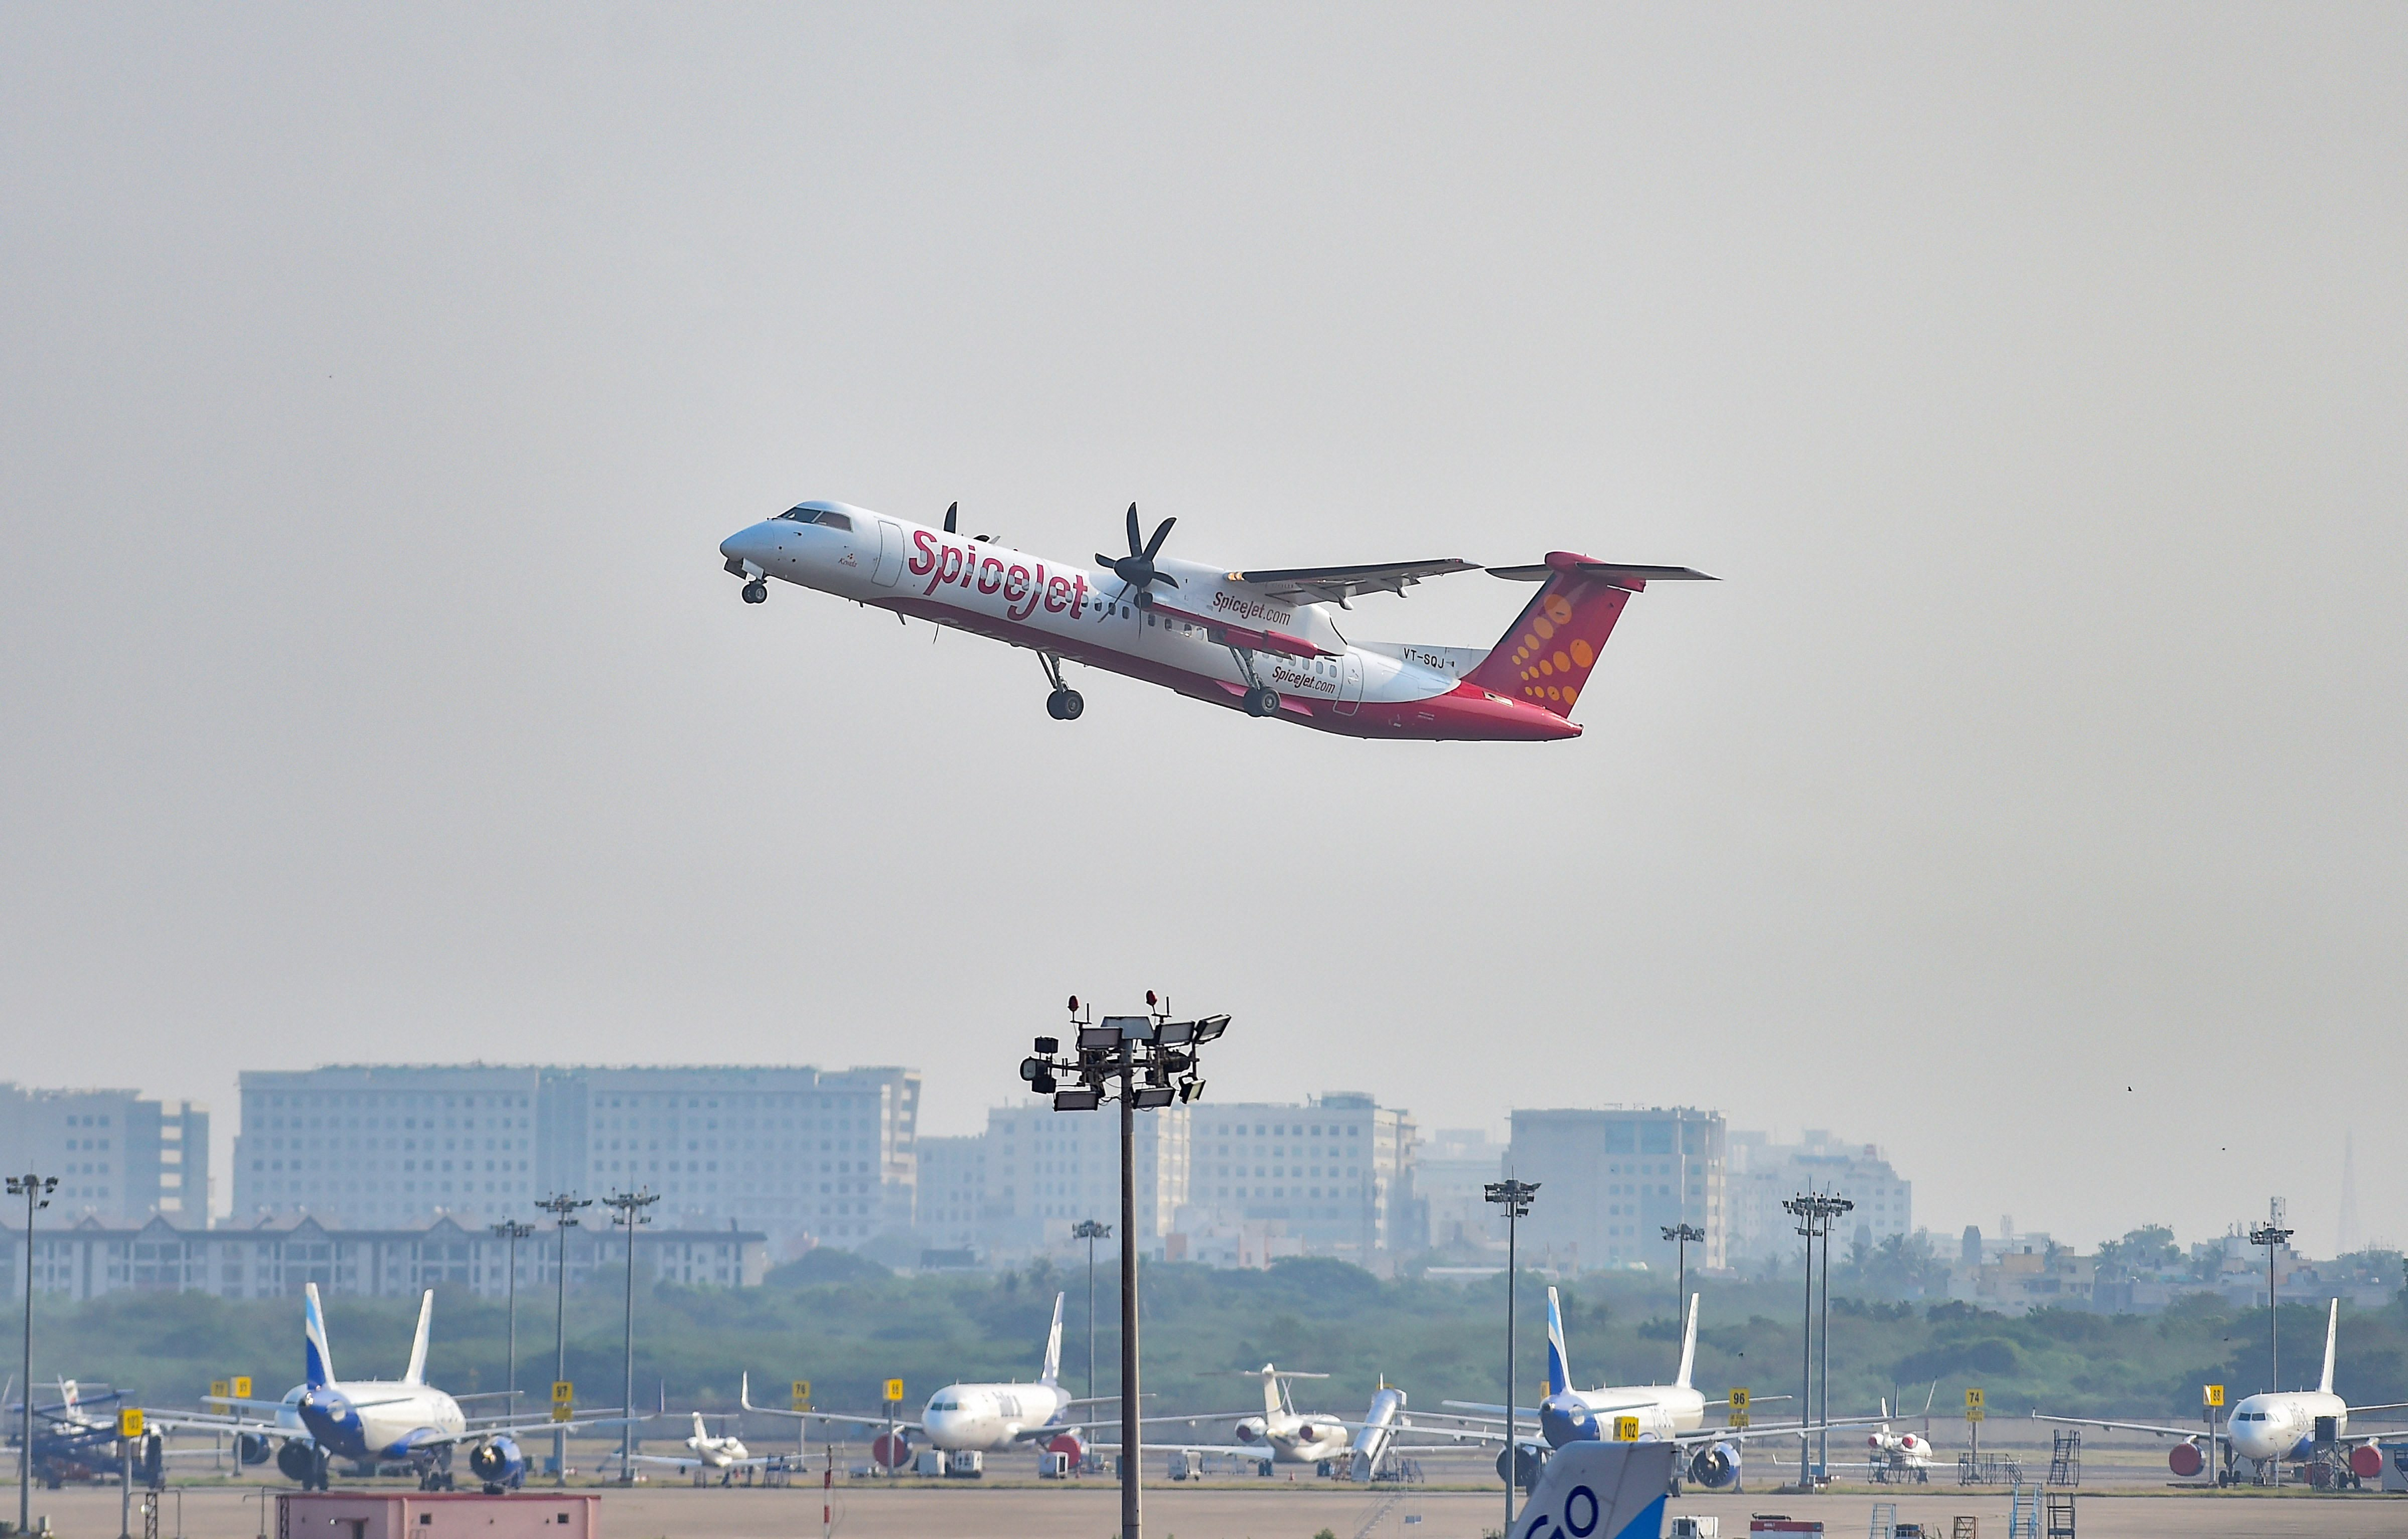 Chennai: A SpiceJet plane takes-off from Chennai airport for domestic travel, after flights resumed during the ongoing nationwide lockdown, in Chennai, Monday, May 25, 2020. All scheduled commercial passenger flights were suspended since March 25 when the government imposed a nationwide lockdown to curb the coronavirus pandemic. (PTI Photo/R Senthil Kumar)(PTI25-05-2020_000114B)